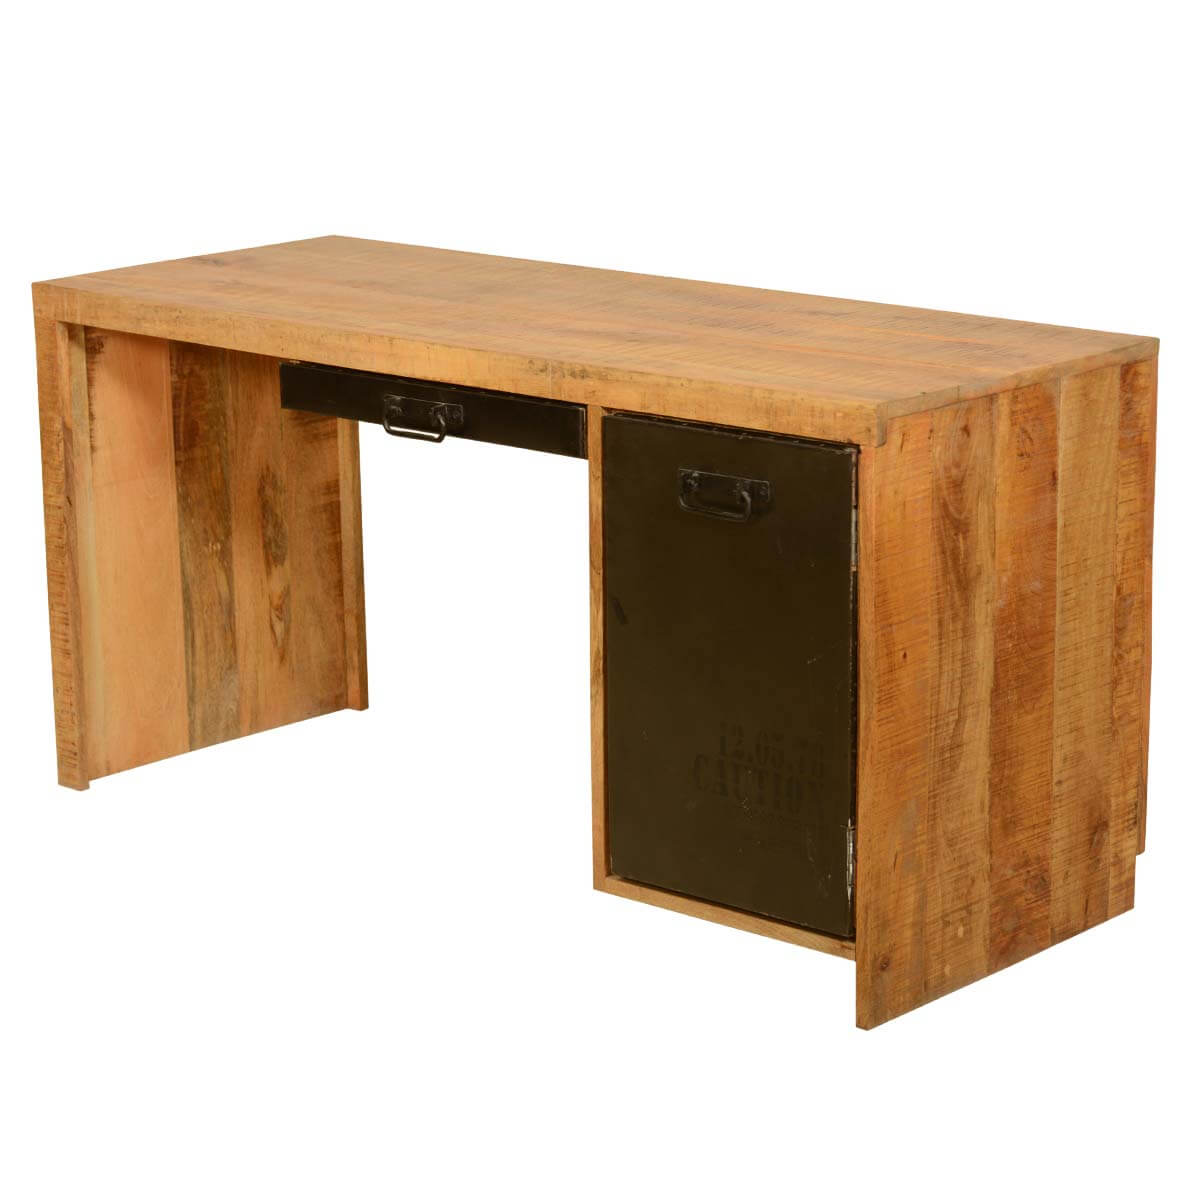 Computer Desk w Pull Out Keyboard Made of Acacia Wood & Iron